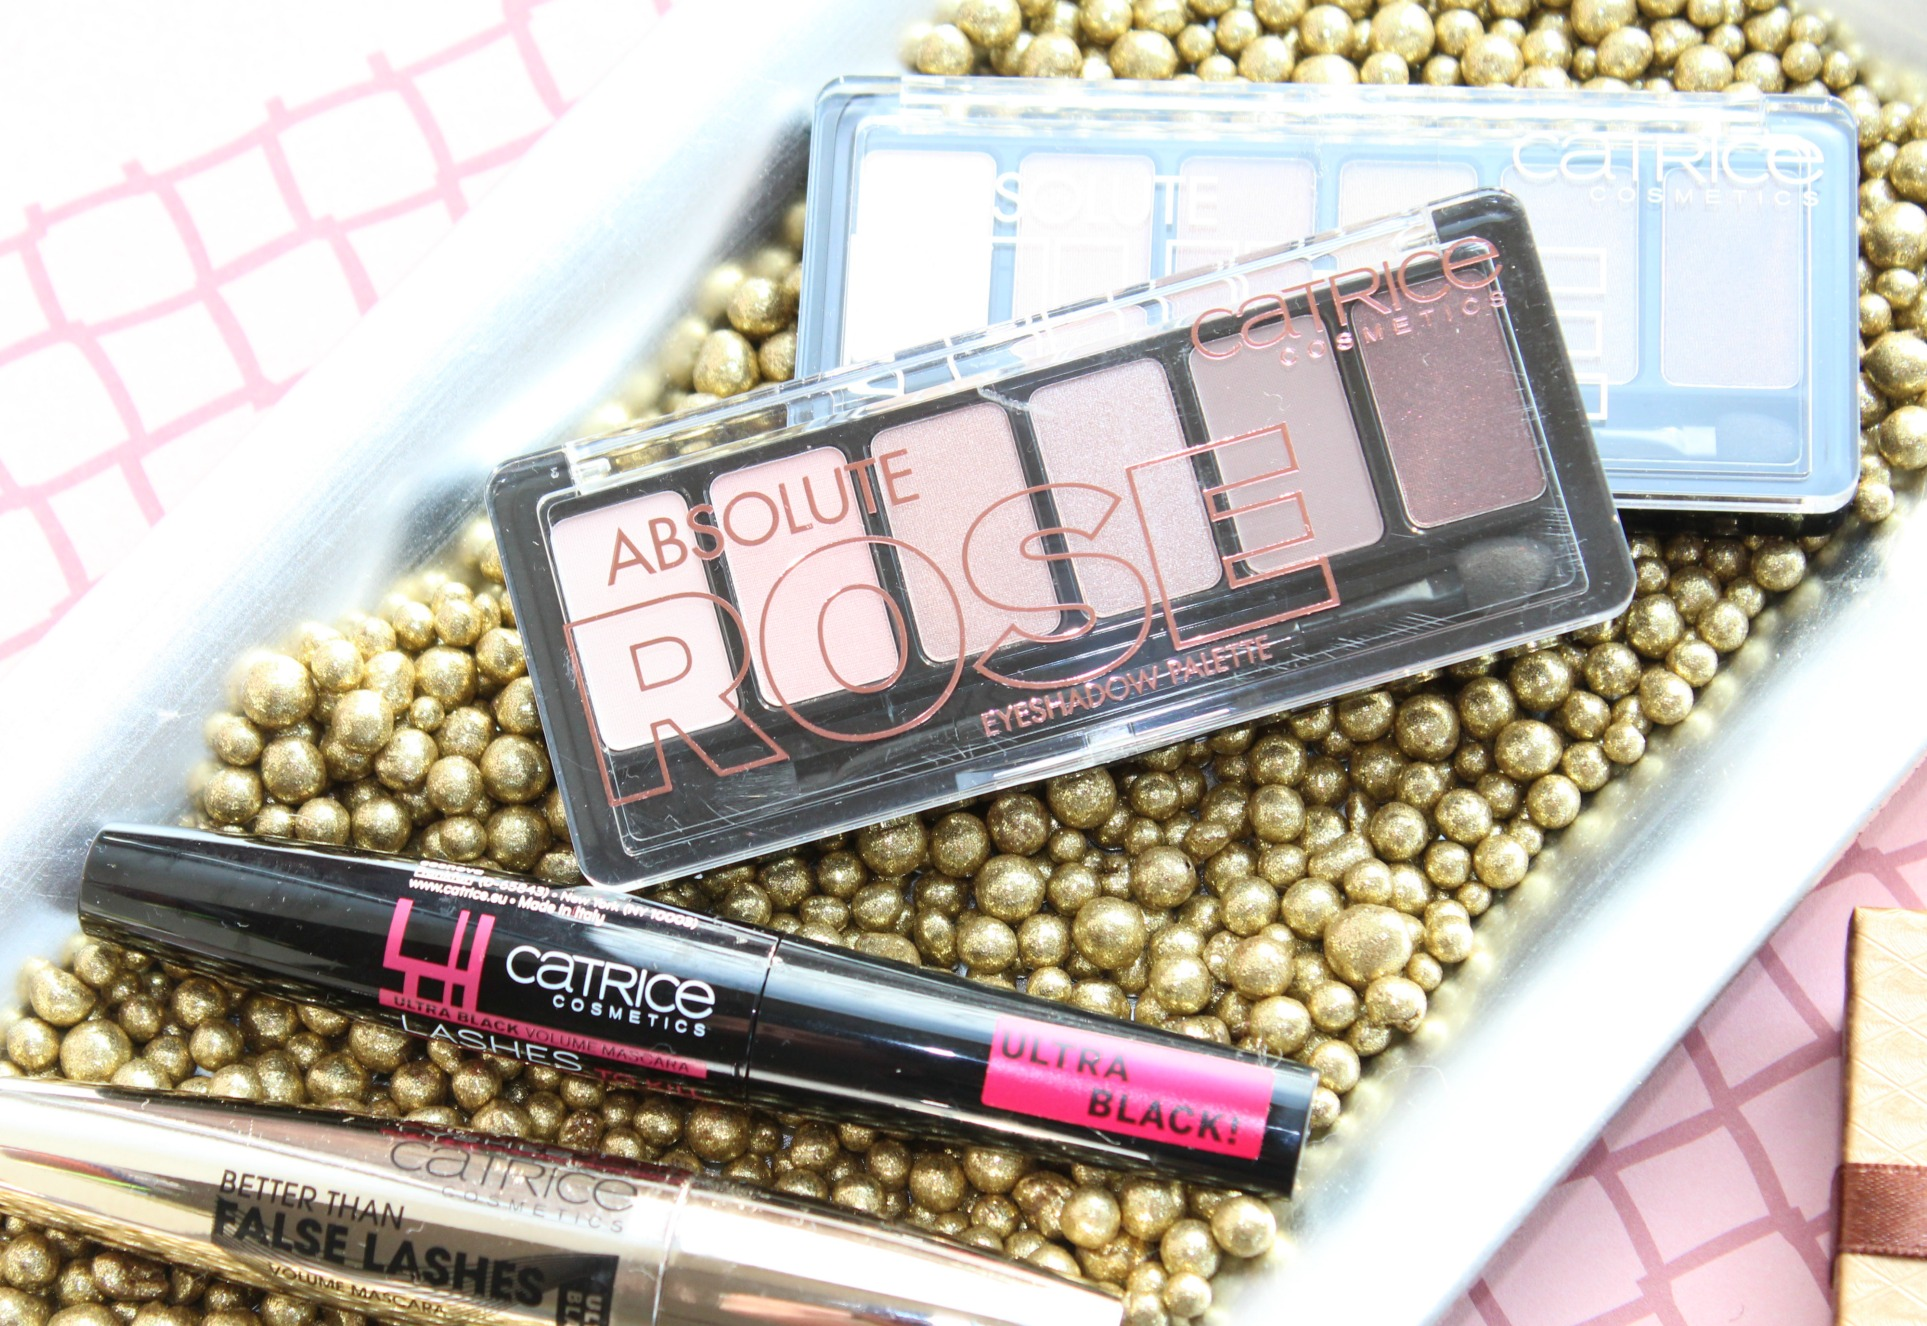 Mini Beaty shoplog-GoodGirlsCompany-Catrice-Body Shop-Garnier Loving Blends